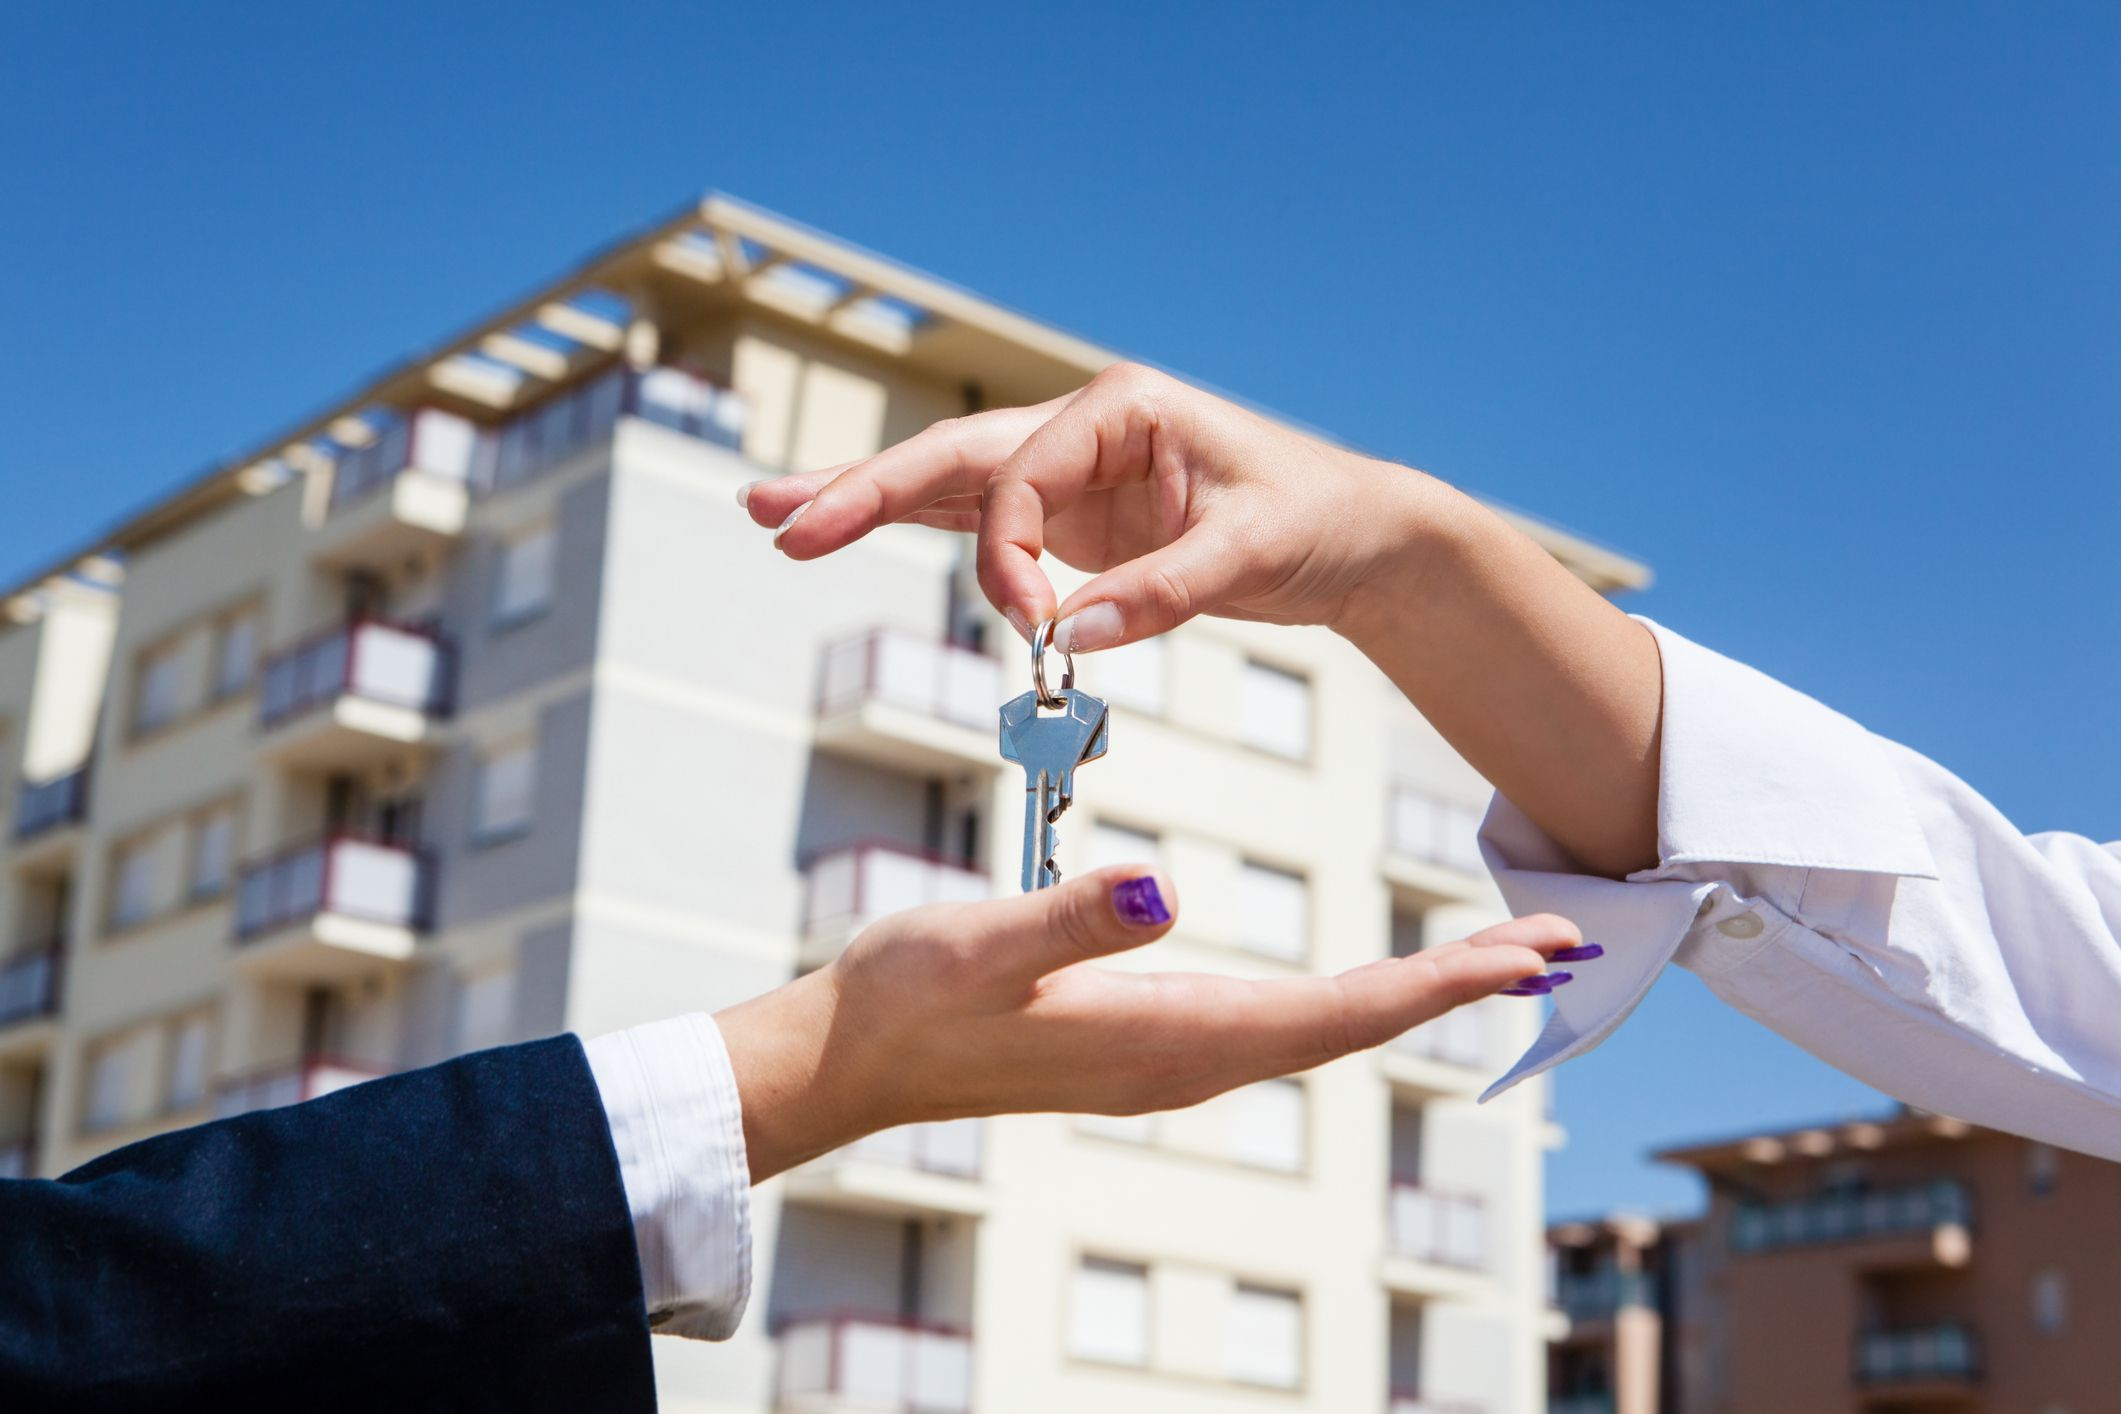 Learn About Income Property Valuation Using Capitalization Rates